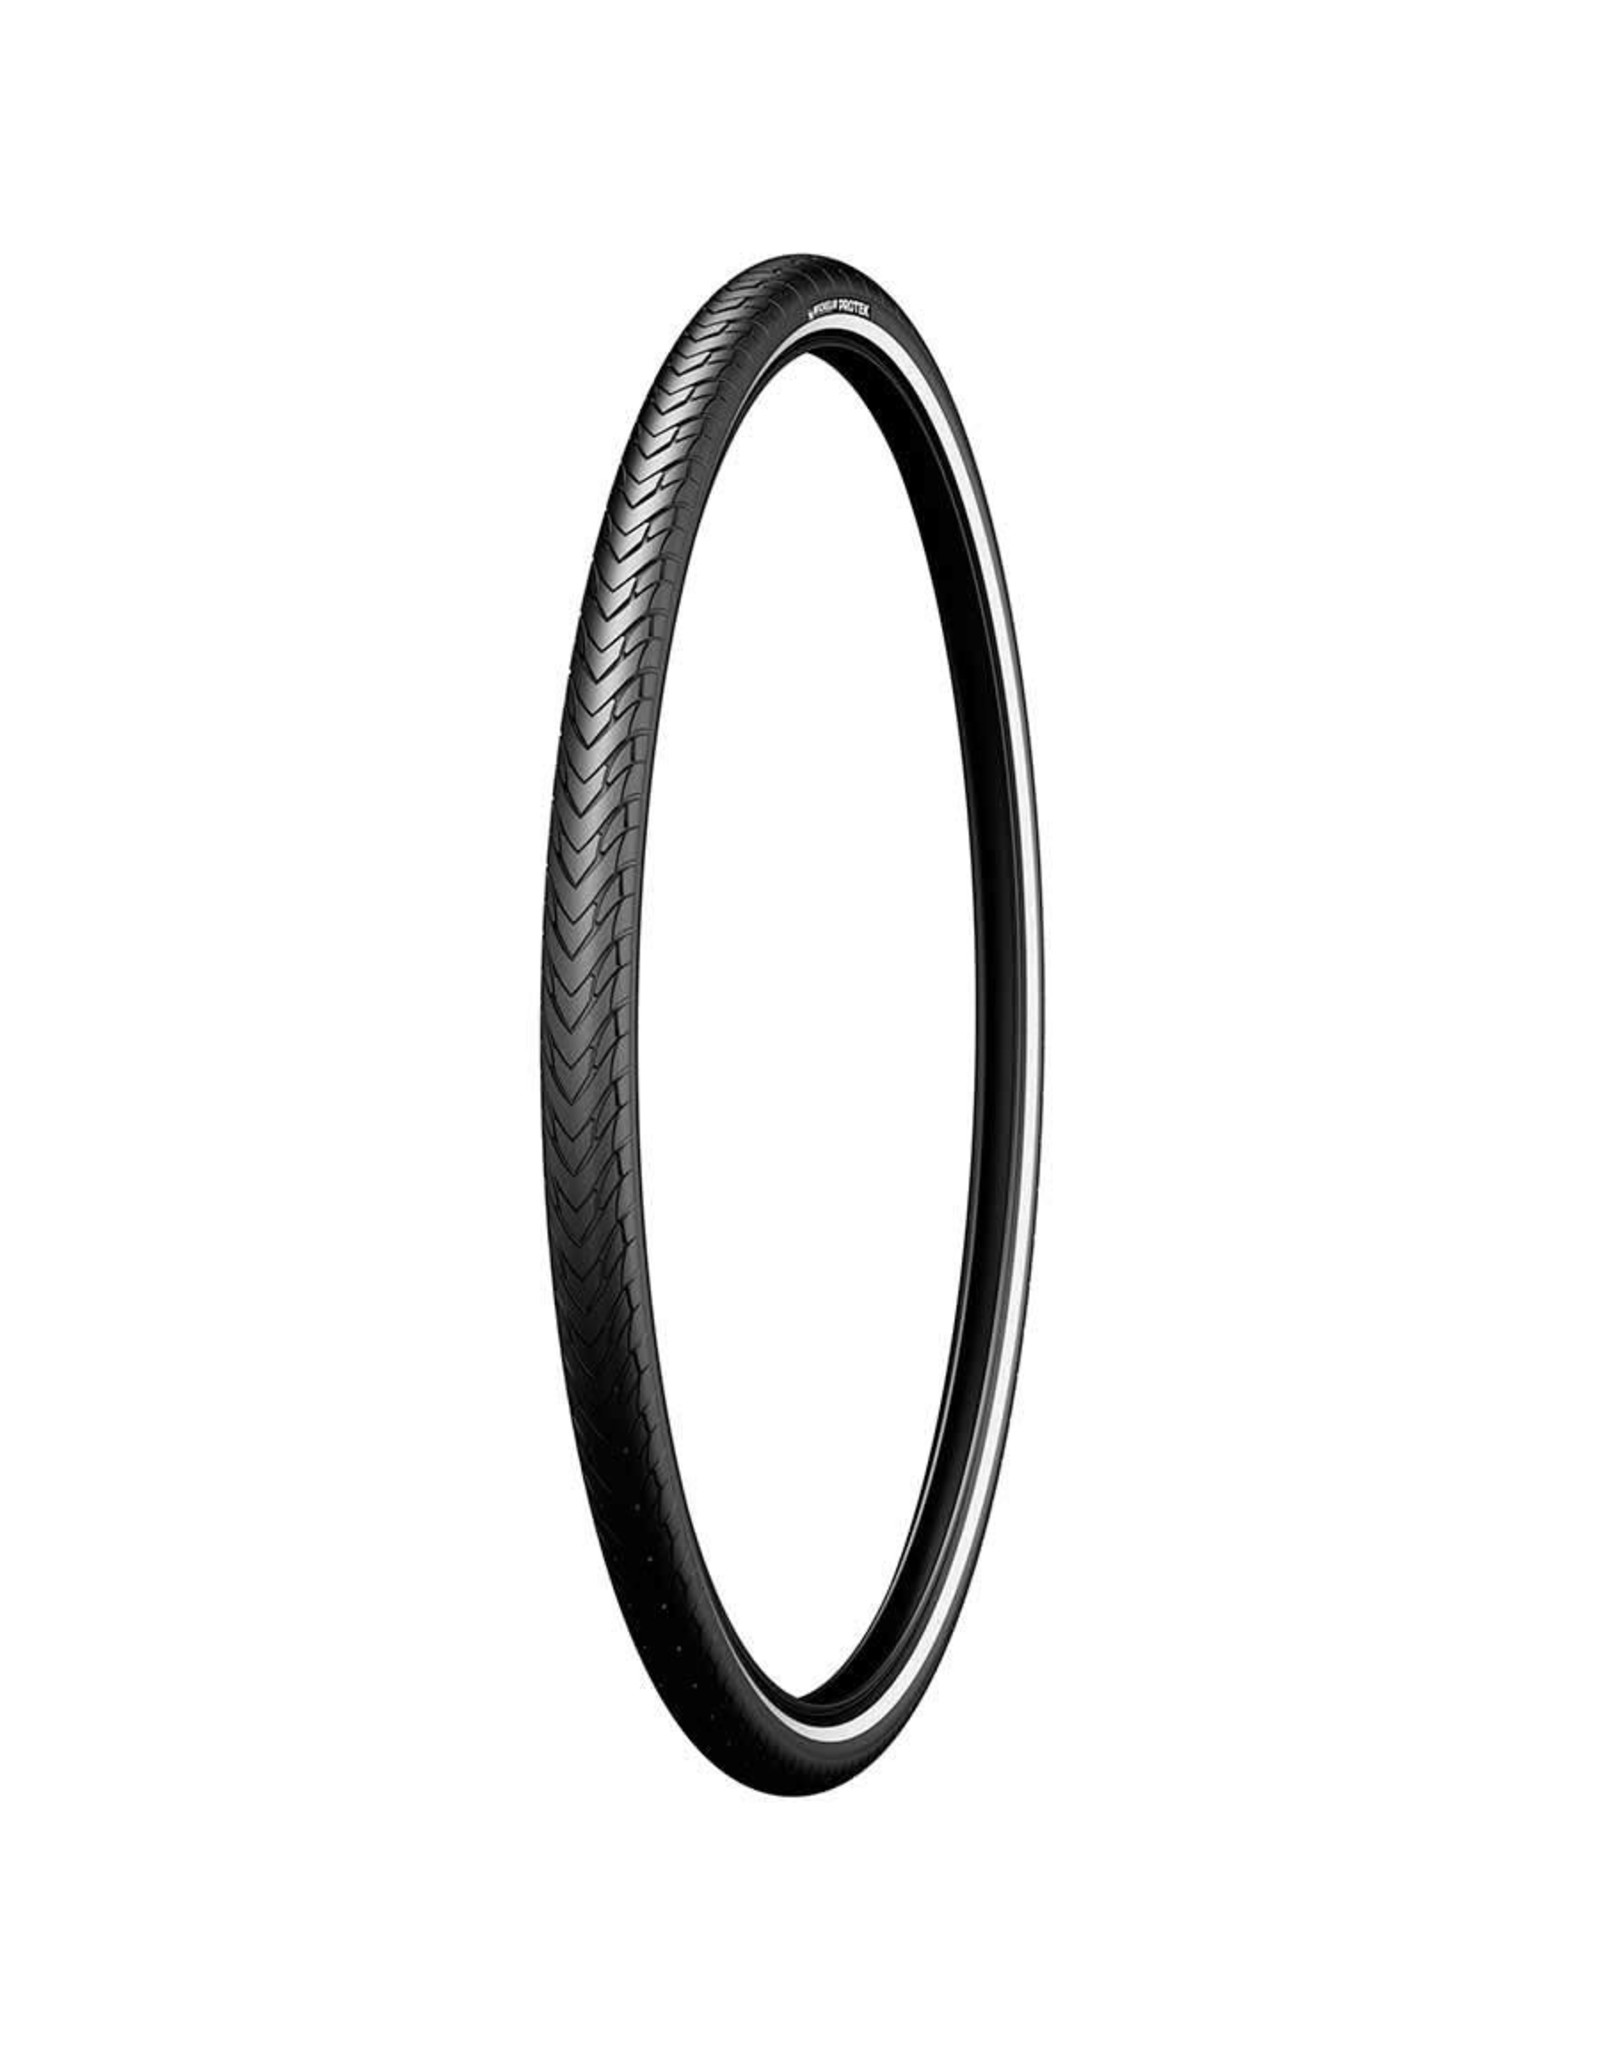 Michelin Protek, 700x28C, Rigide